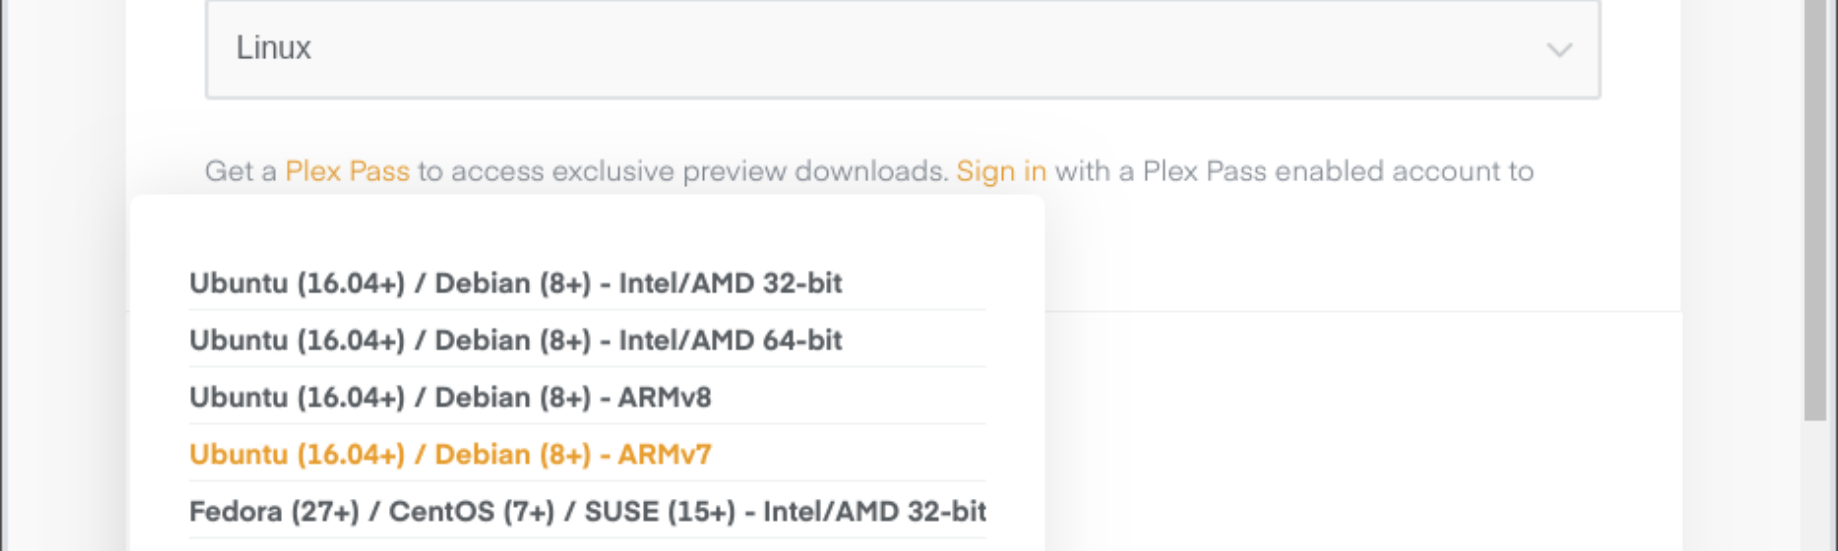 Migrate Plex Media Server to official package on Raspberry Pi 3